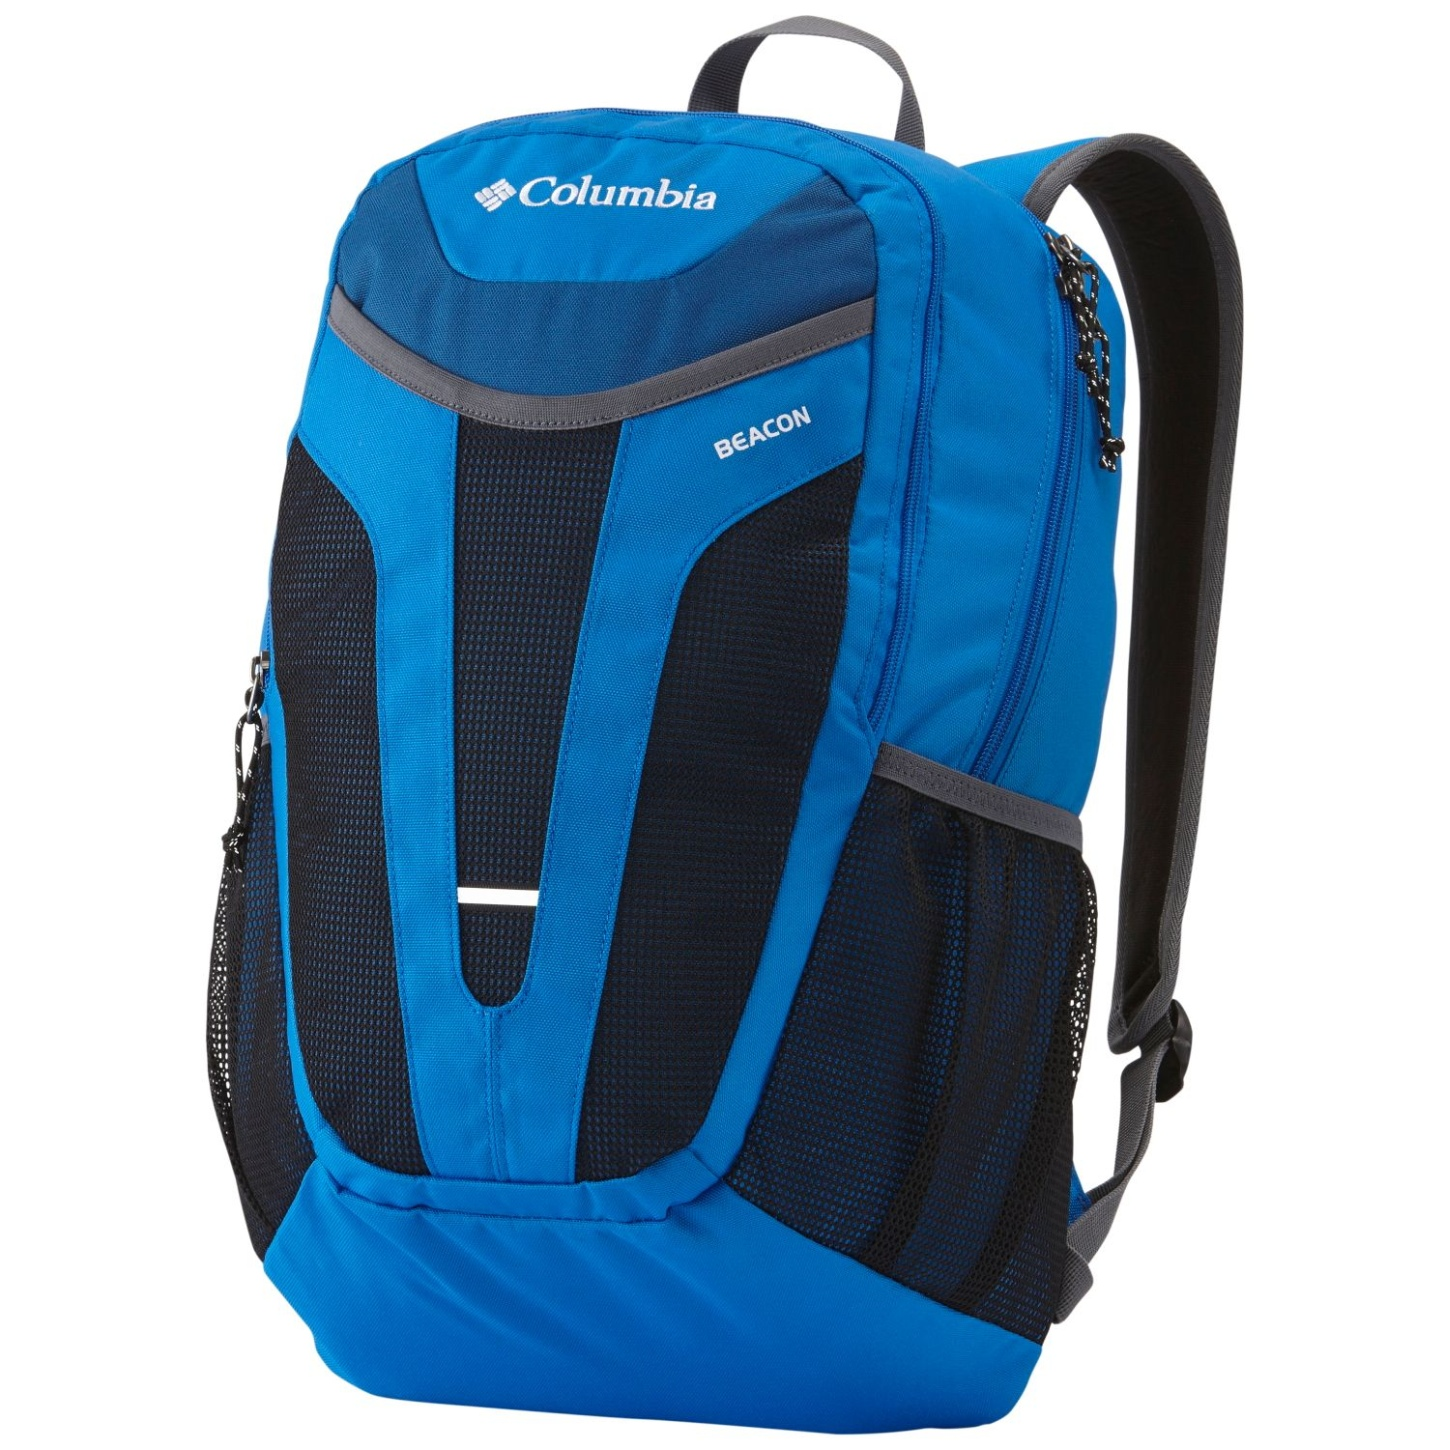 Columbia Rucksack Beacon Super Blue, Marine Blue-30